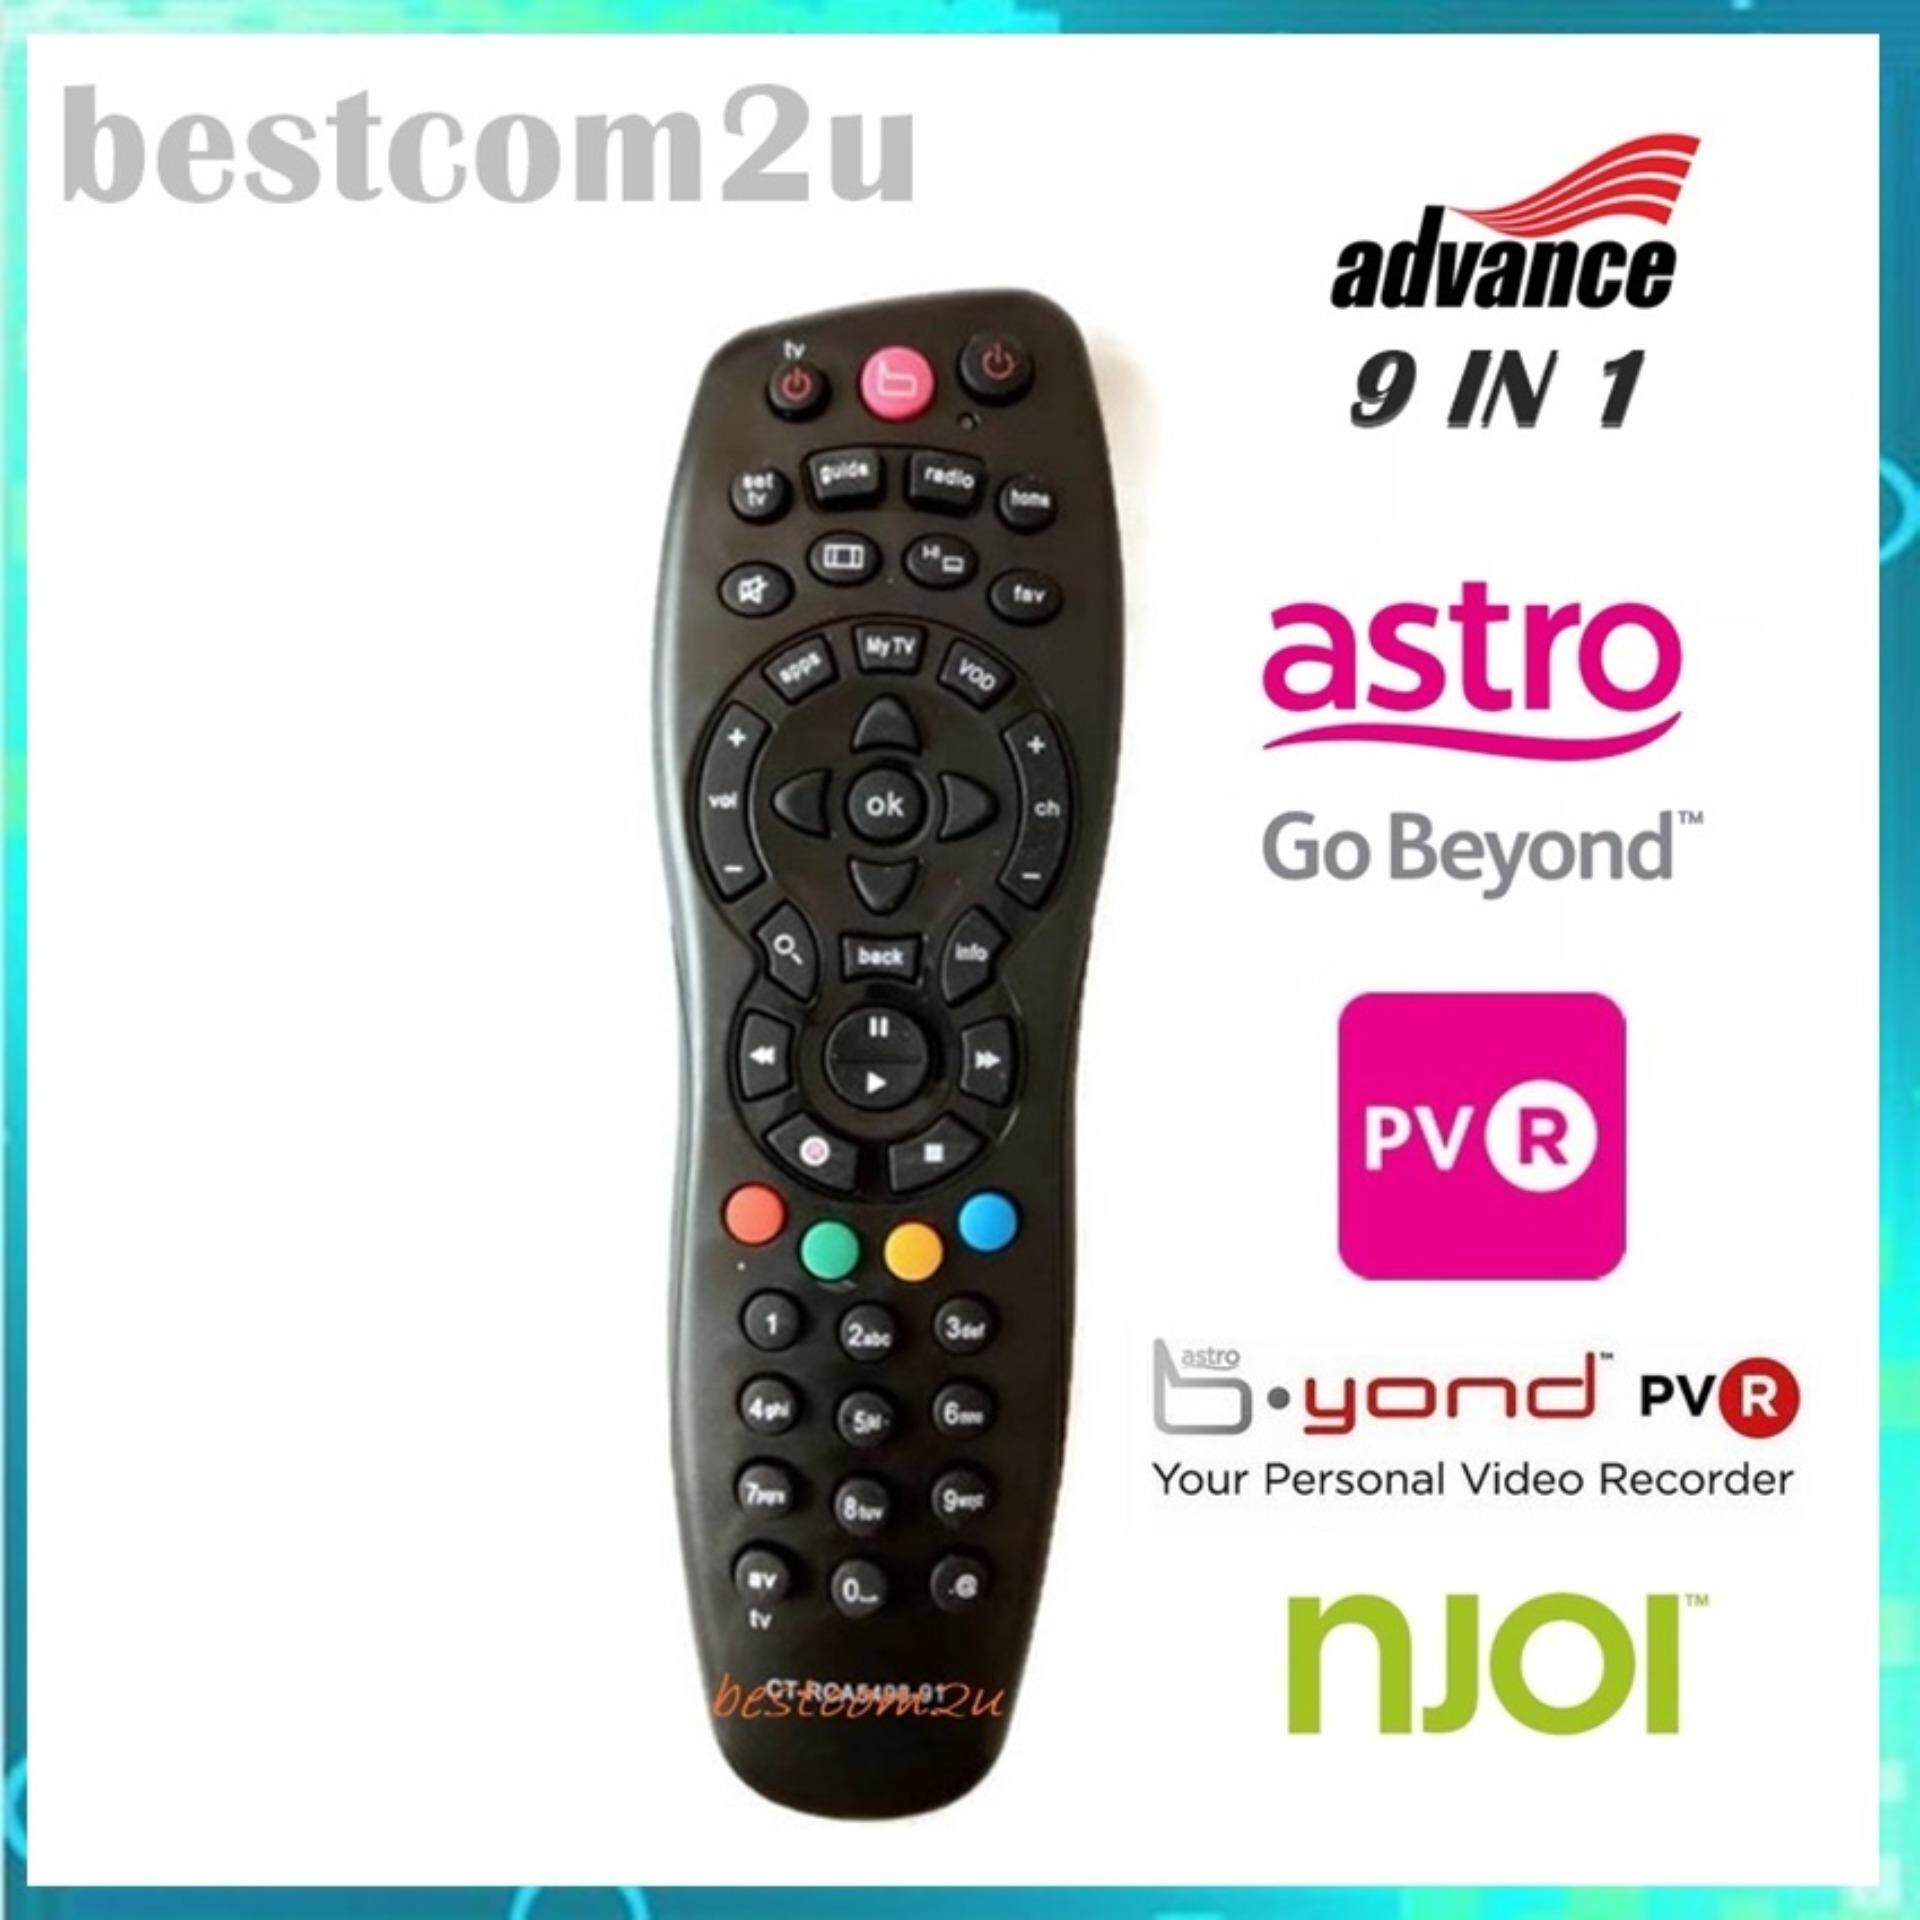 Oem Shop Tv Accessories Price In Malaysia Best Fm Gain Signal 180 Astro Beyond Njoi Remote Control Hd 9 1 Record Function